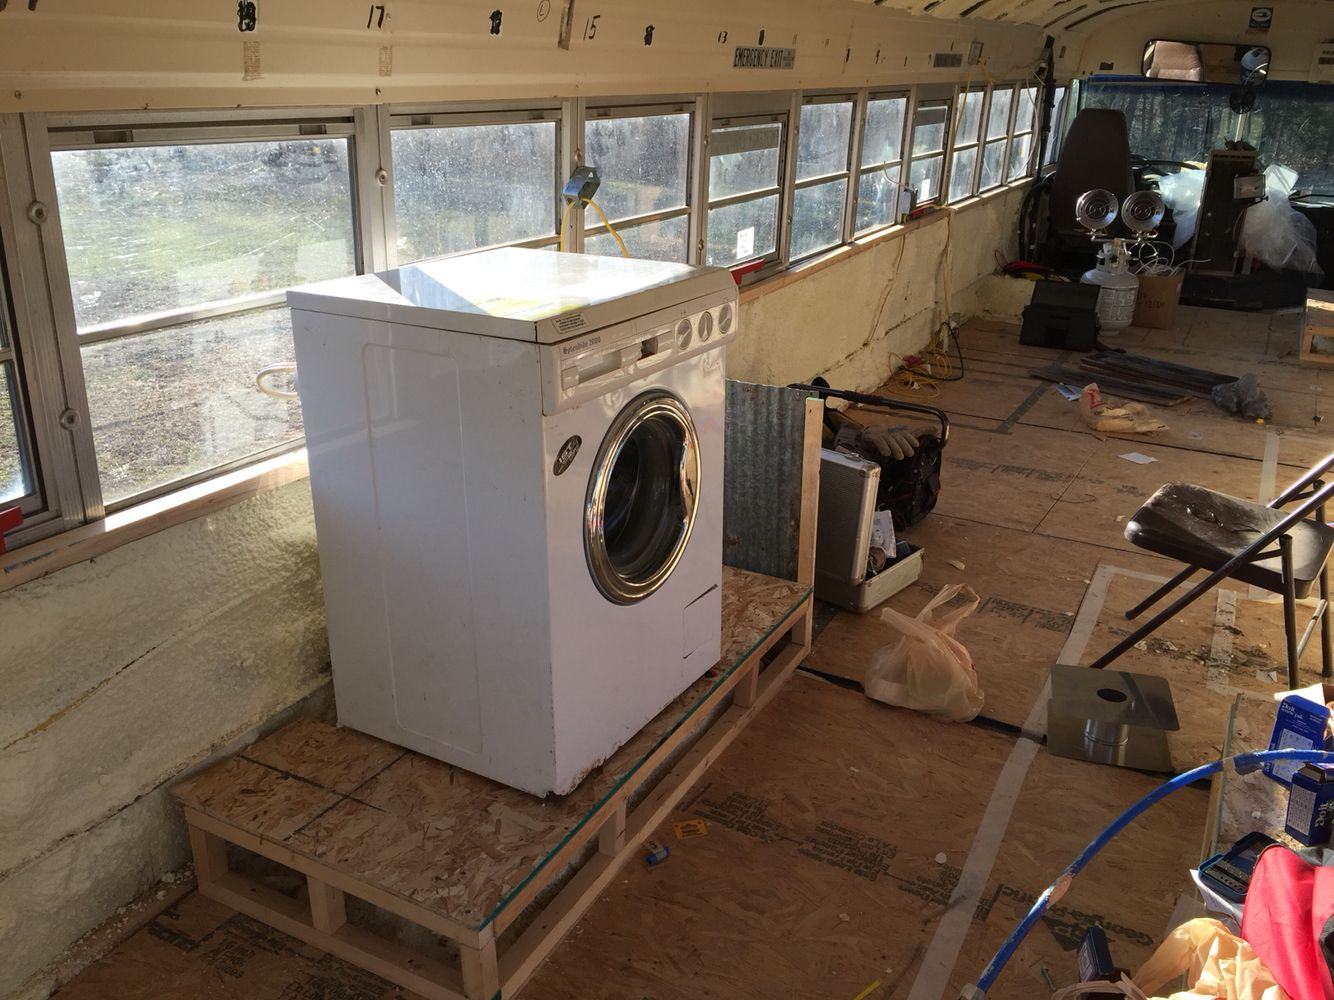 RV washerdryer installed tiny house school bus conversion